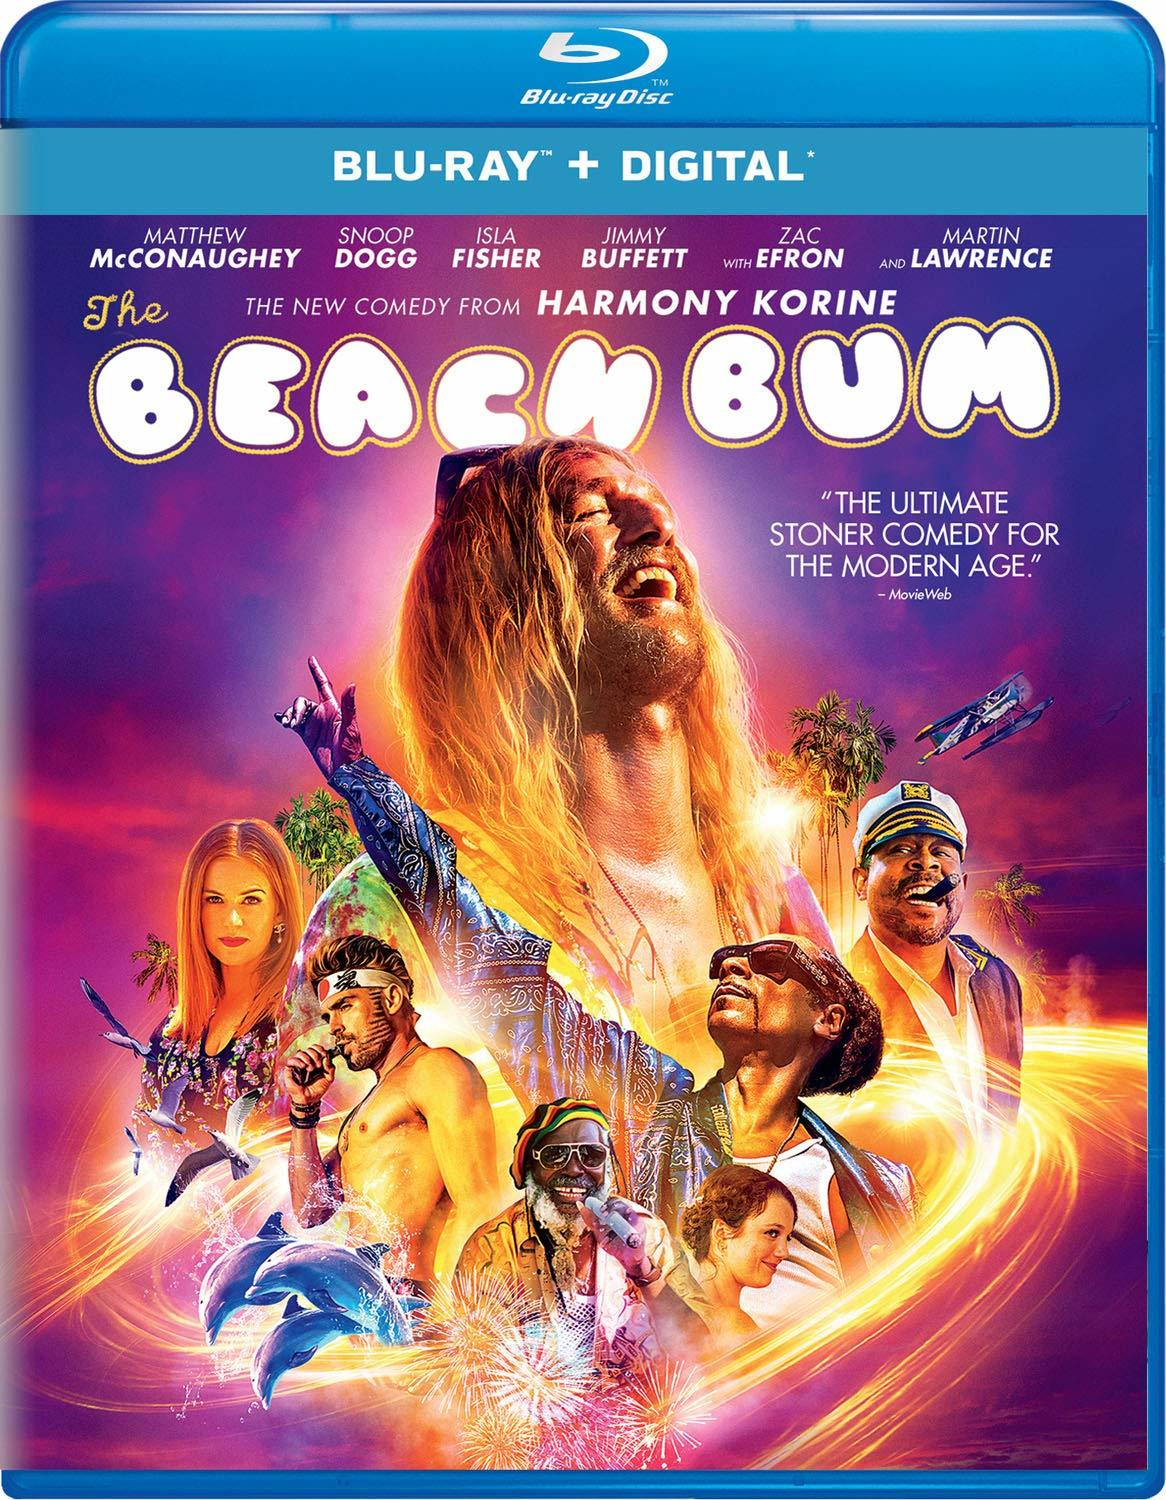 The Beach Bum, now available on Blu-ray and DVD